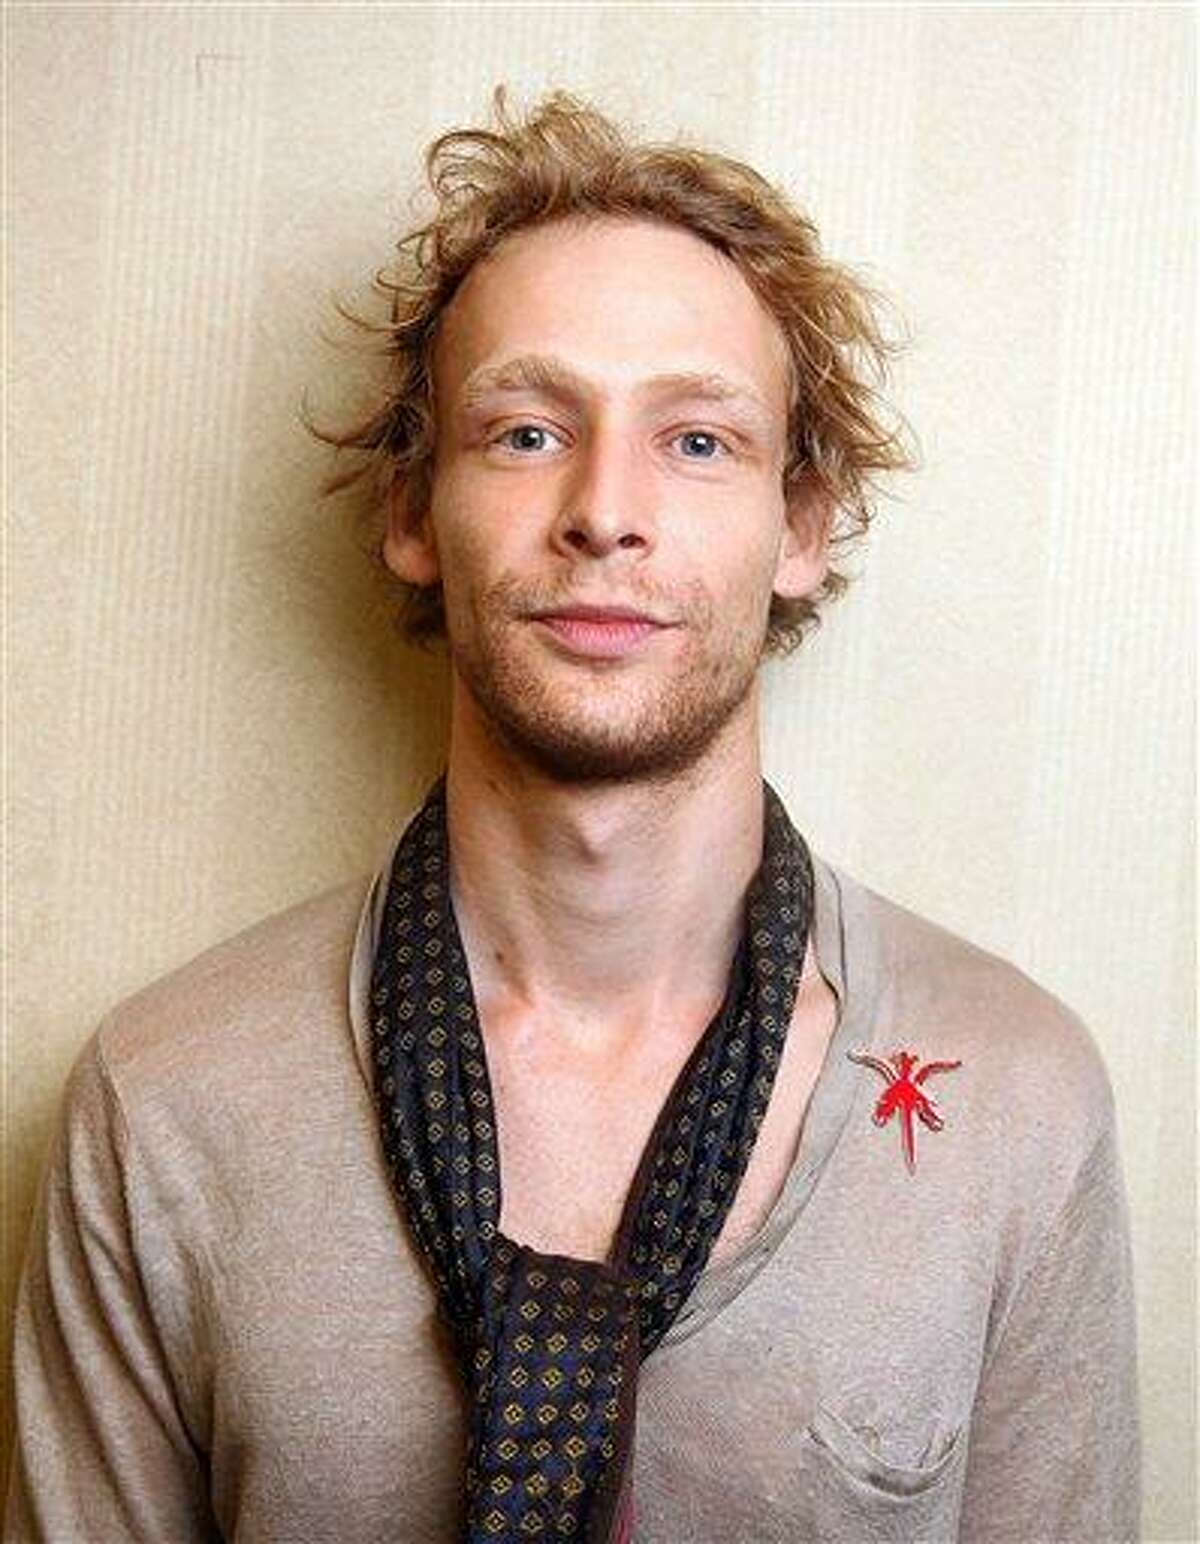 This 2011 file photo shows actor Johnny Lewis posing for a portrait during the 36th Toronto International Film Festival in Toronto, Canada. Authorities say Lewis fell to his death after killing an elderly Los Angeles woman. Lewis appeared in the FX television show